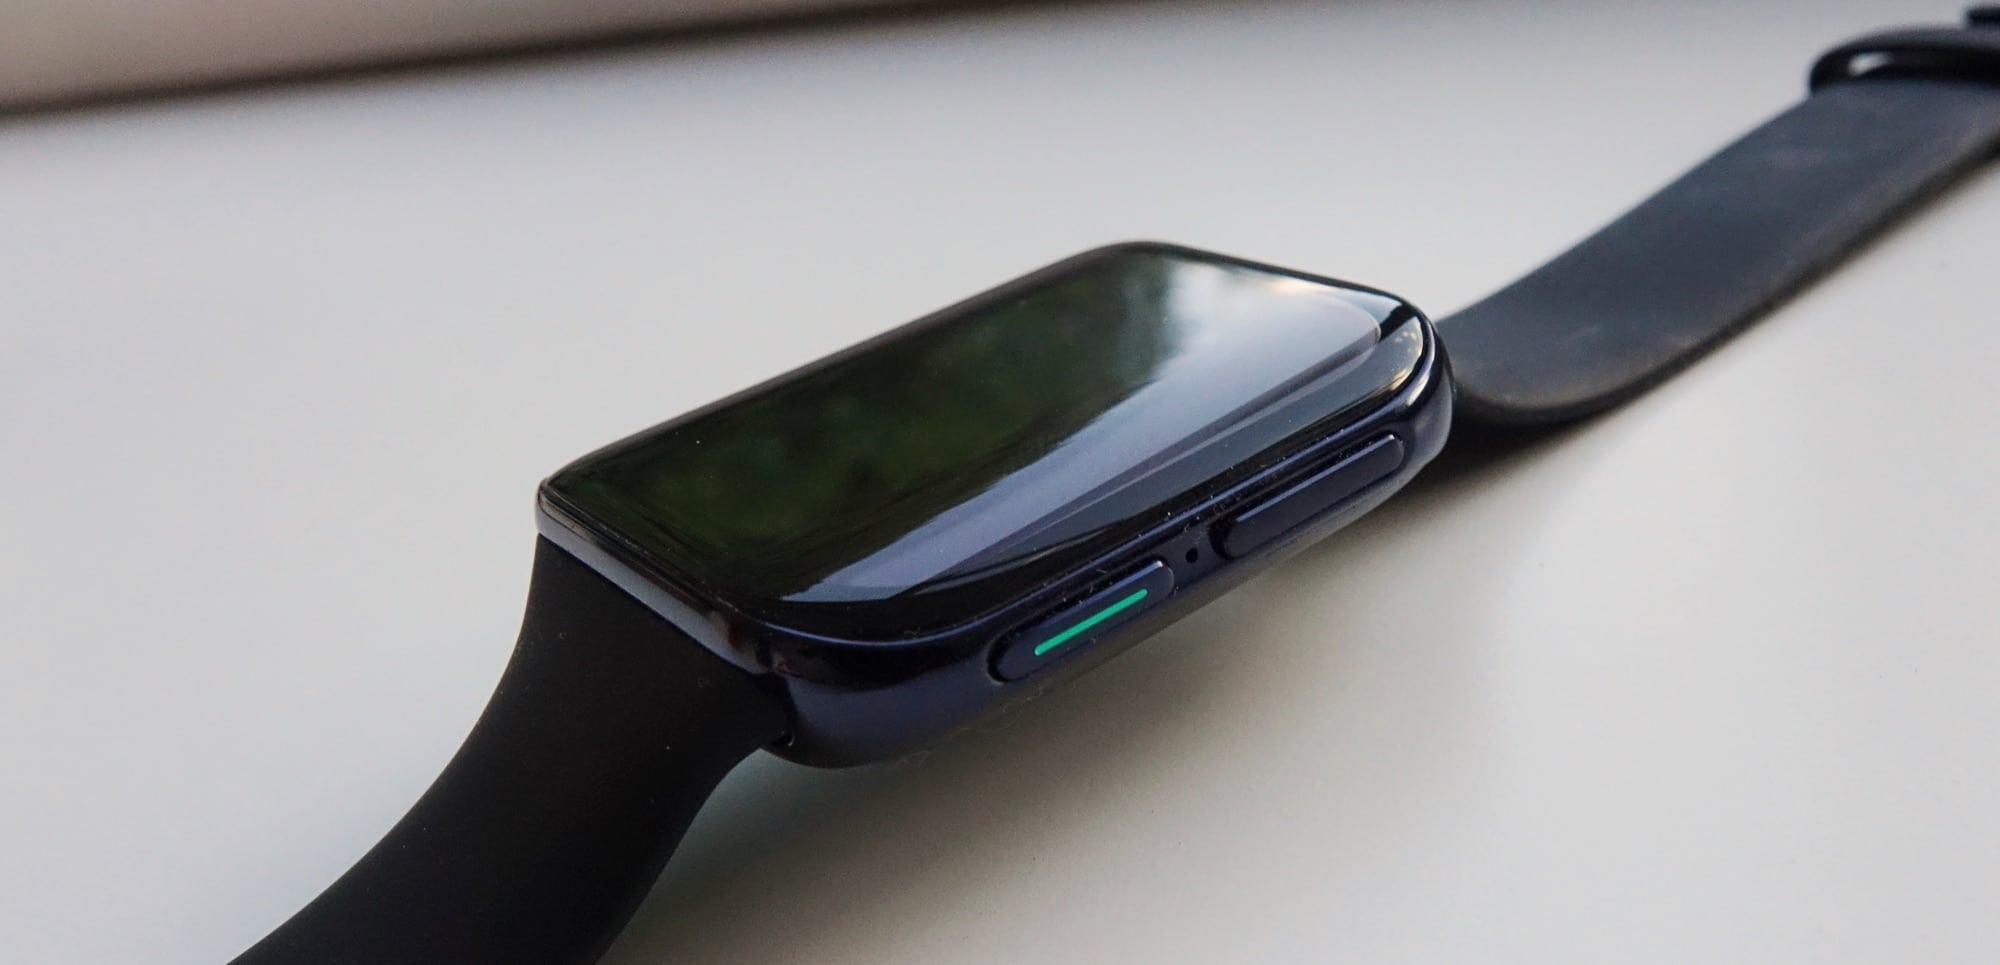 The side of the Oppo Watch